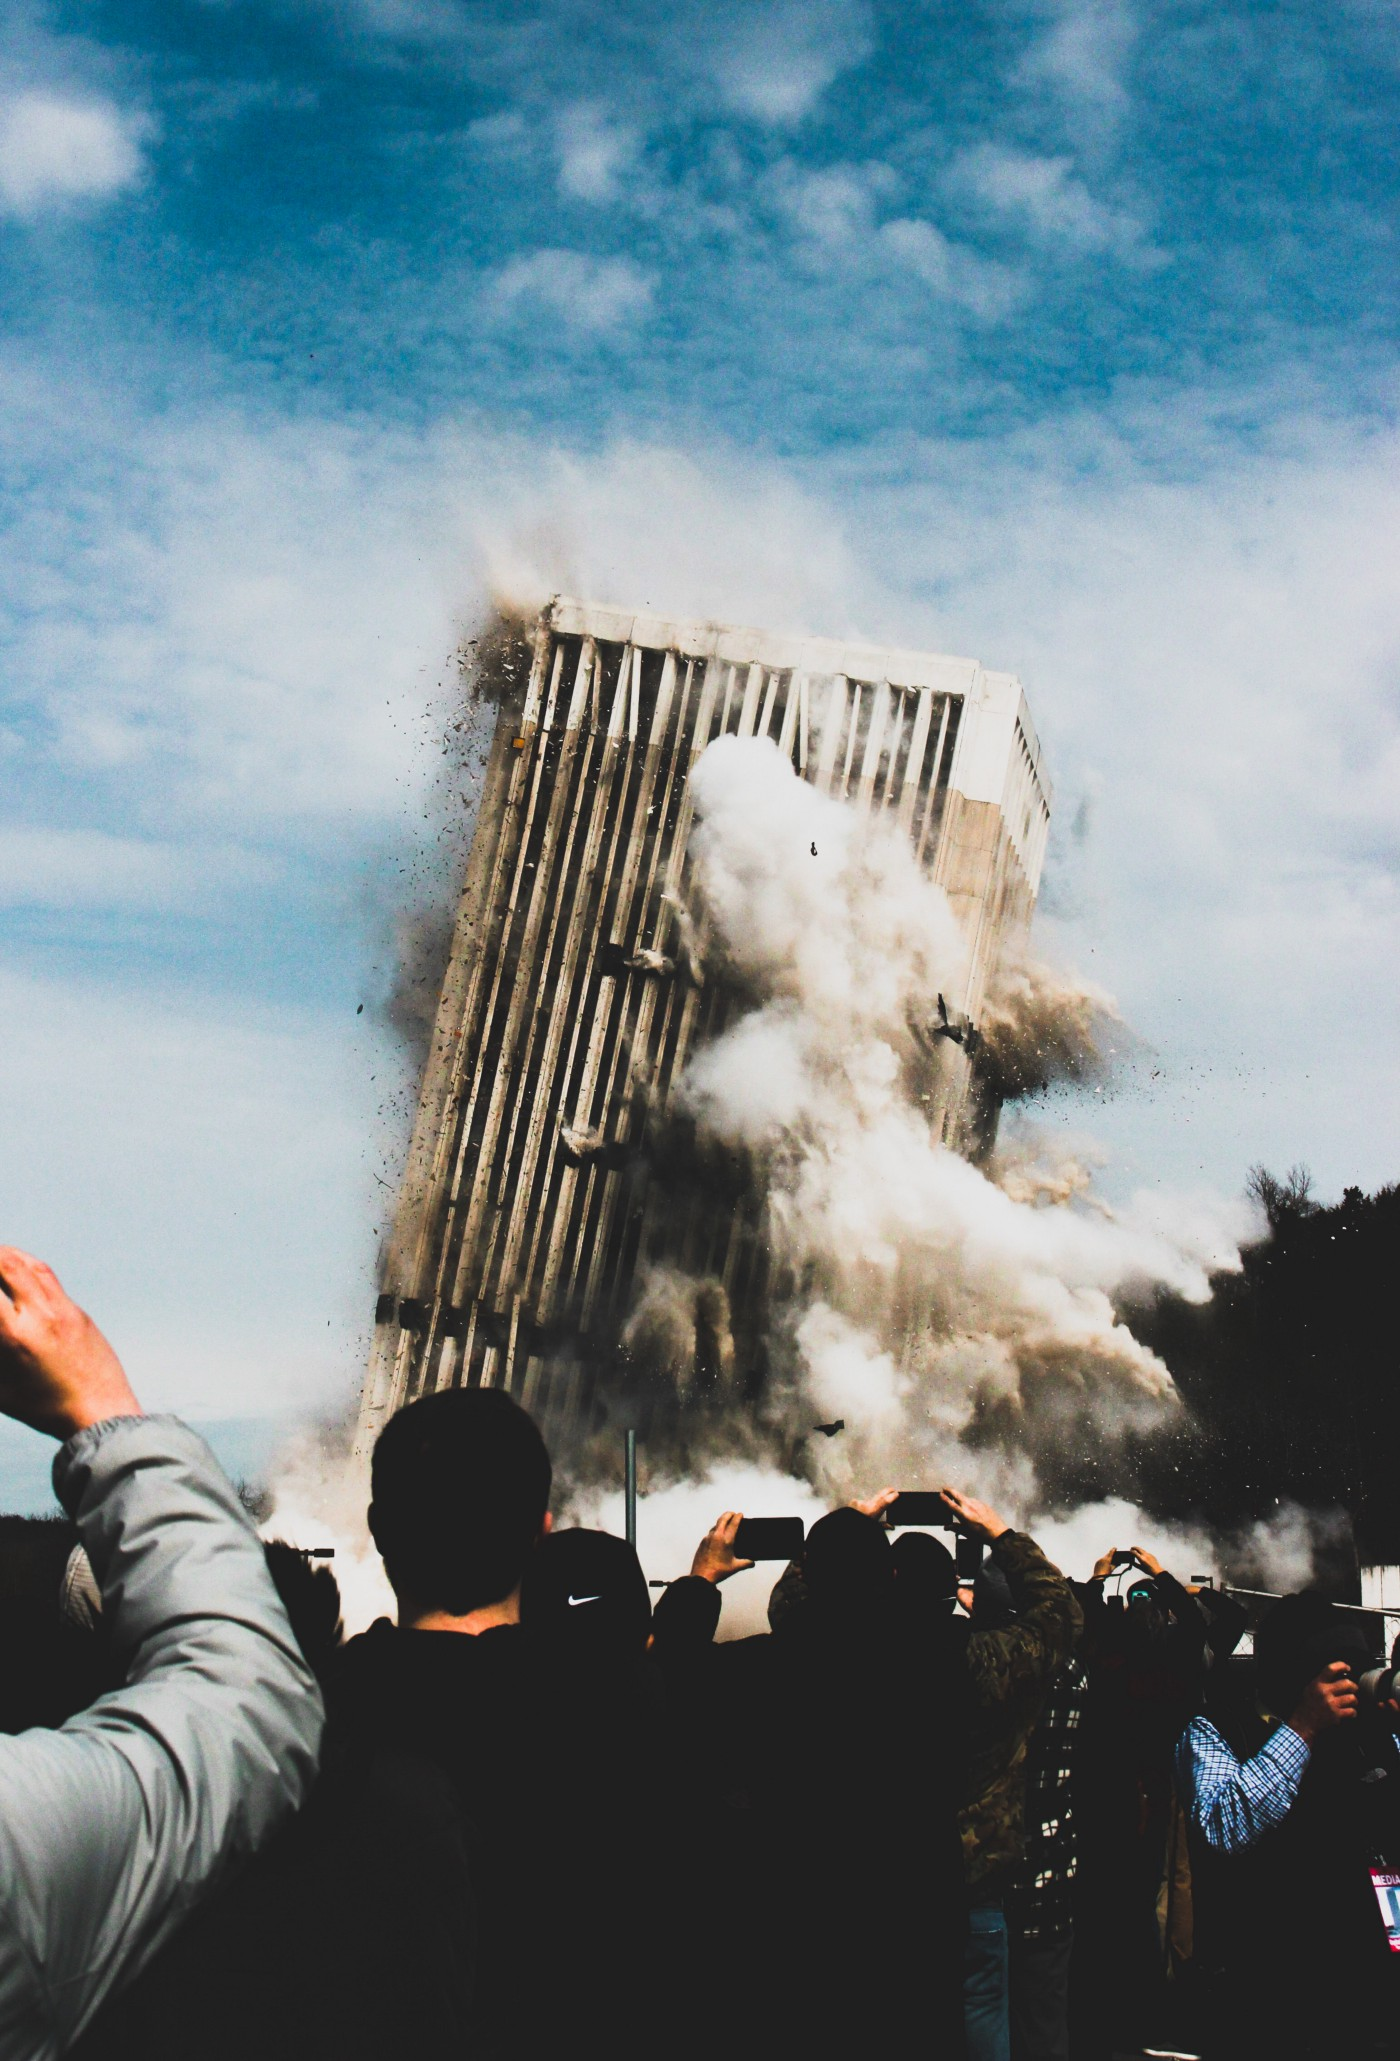 A very tall white building leans to the right with giant plumes of smoke roiling out of it as its foundation collapses underneath it. A building implosion with people's hands holding up cell phone cameras at the bottom as they're taking photos of it.